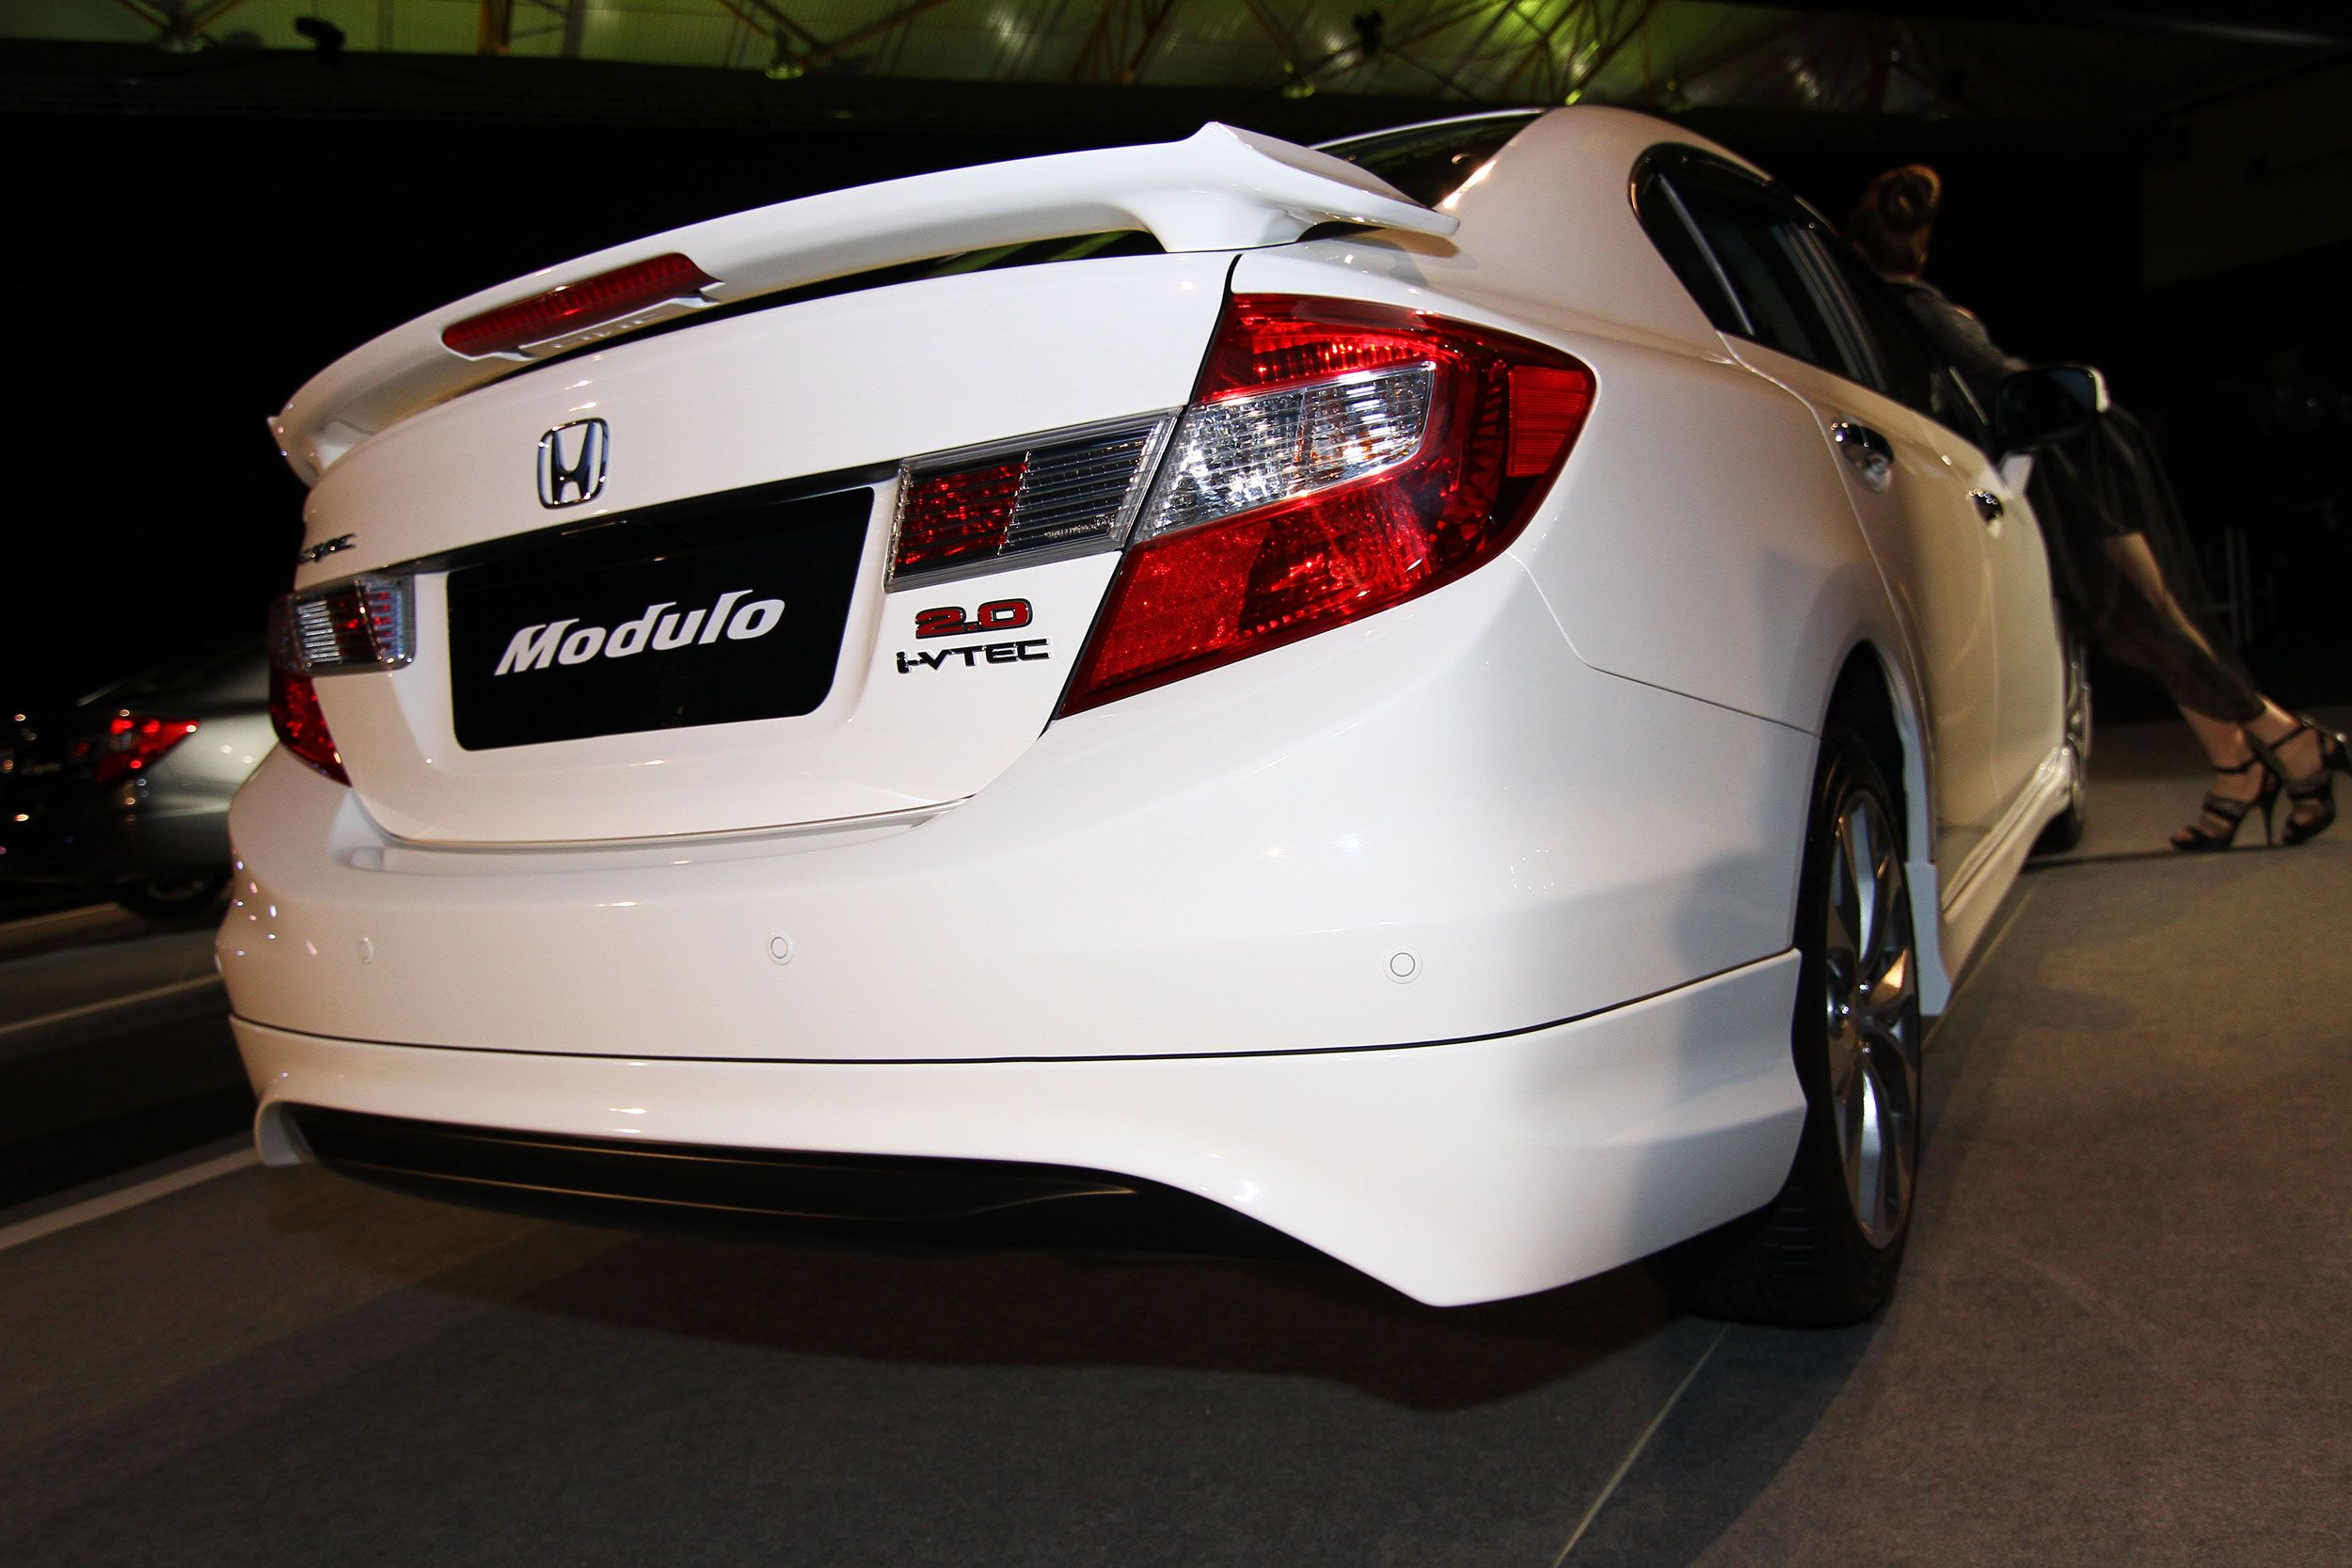 Honda civic 9th gen launched from rm115k 5yrs warranty unlimited mileage and 10k service